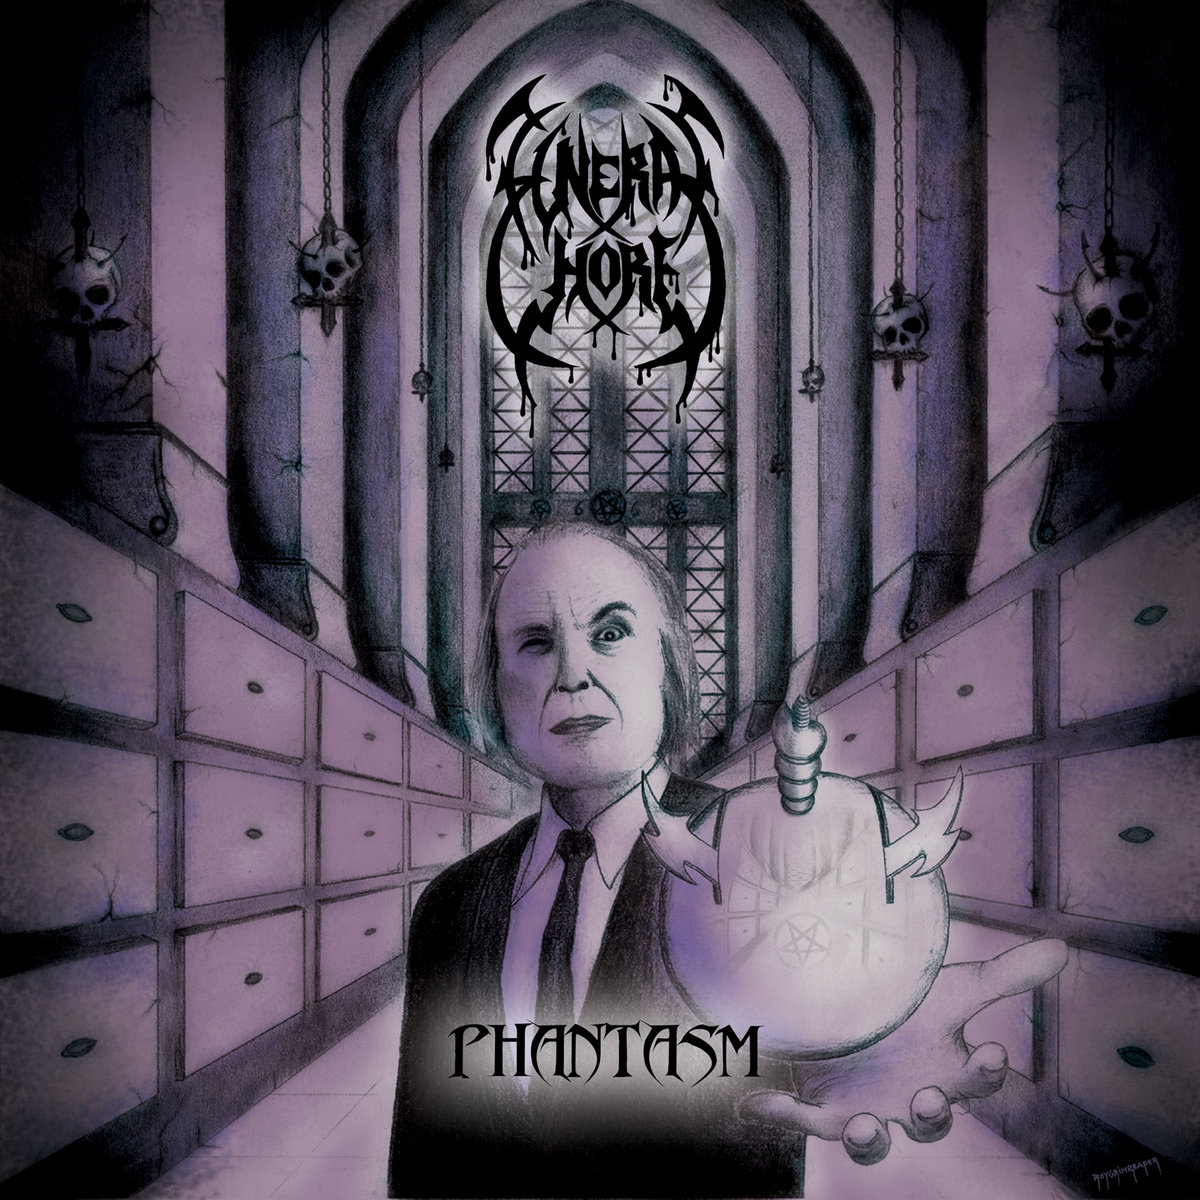 Funeral Whore – Phantasm